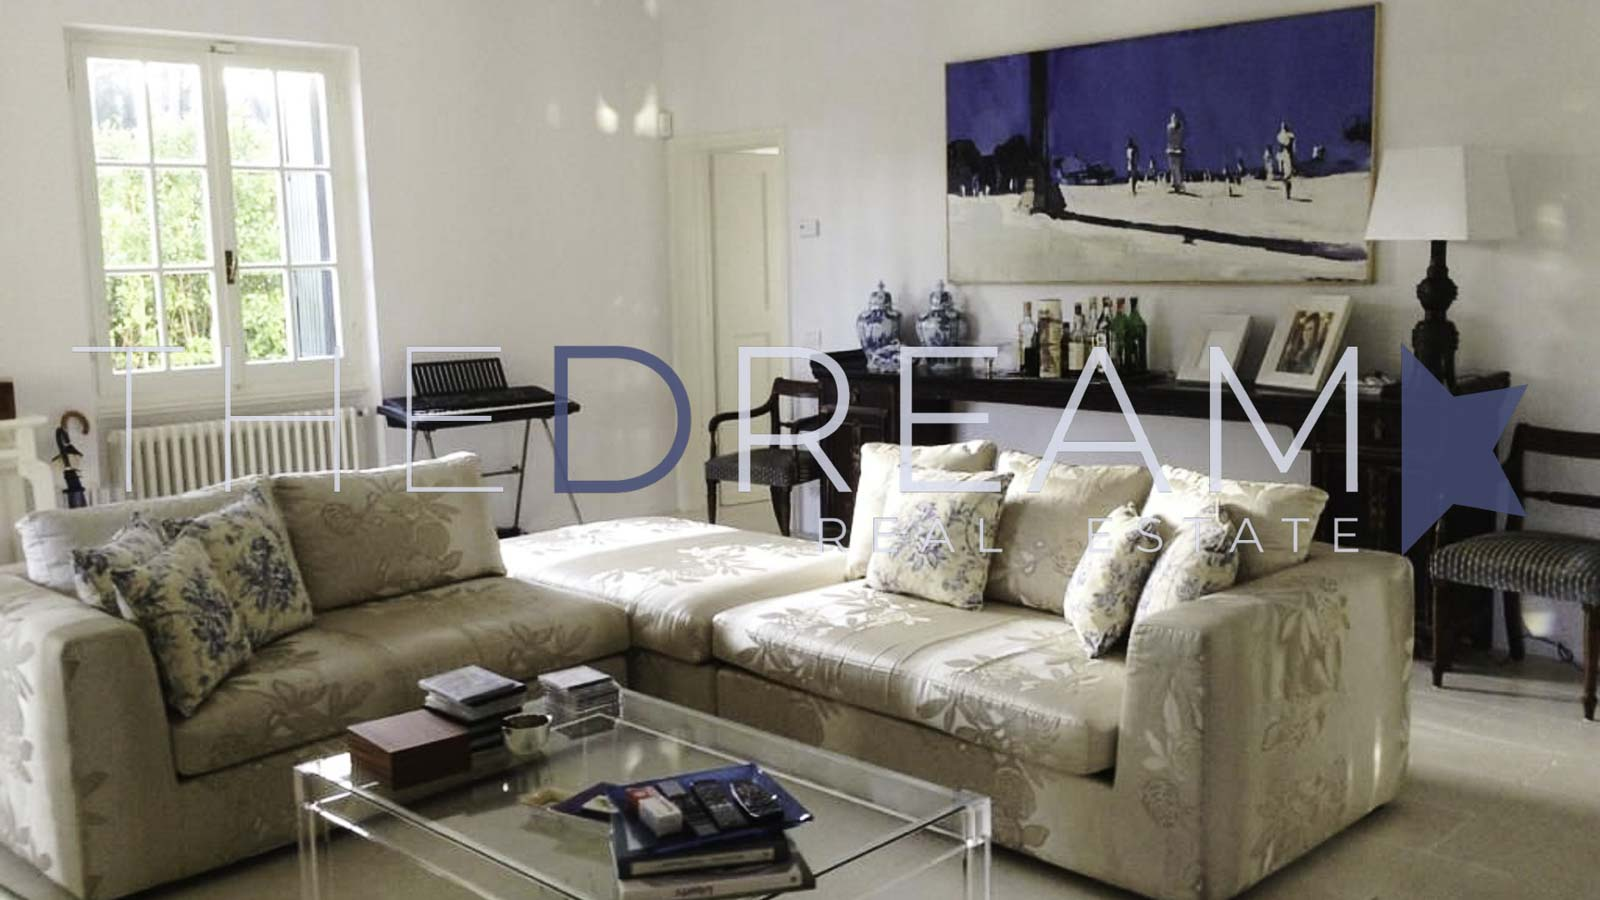 Located in the most prestigious area, this property for rent in Forte dei Marmi is surrounded by a large and well-kept garden with a large swimming pool. Property managed by The Dream RE, Real estate agency in Forte dei Marmi